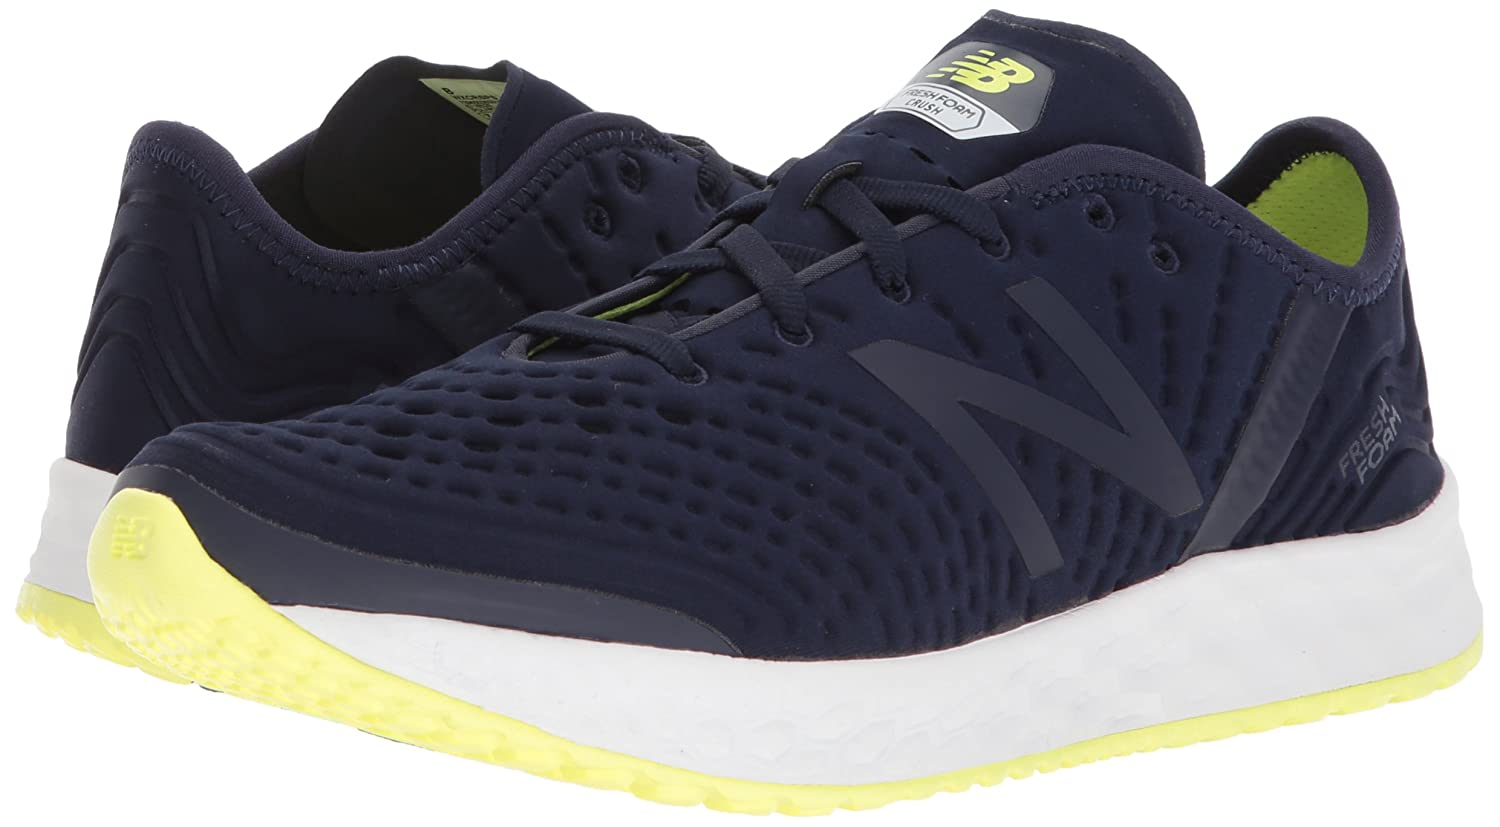 New Crush Balance Women's Fresh Foam Crush New V1 Cross Trainer B005ATPTIO 5 D US|Pigment/Solar Yellow fadfb1